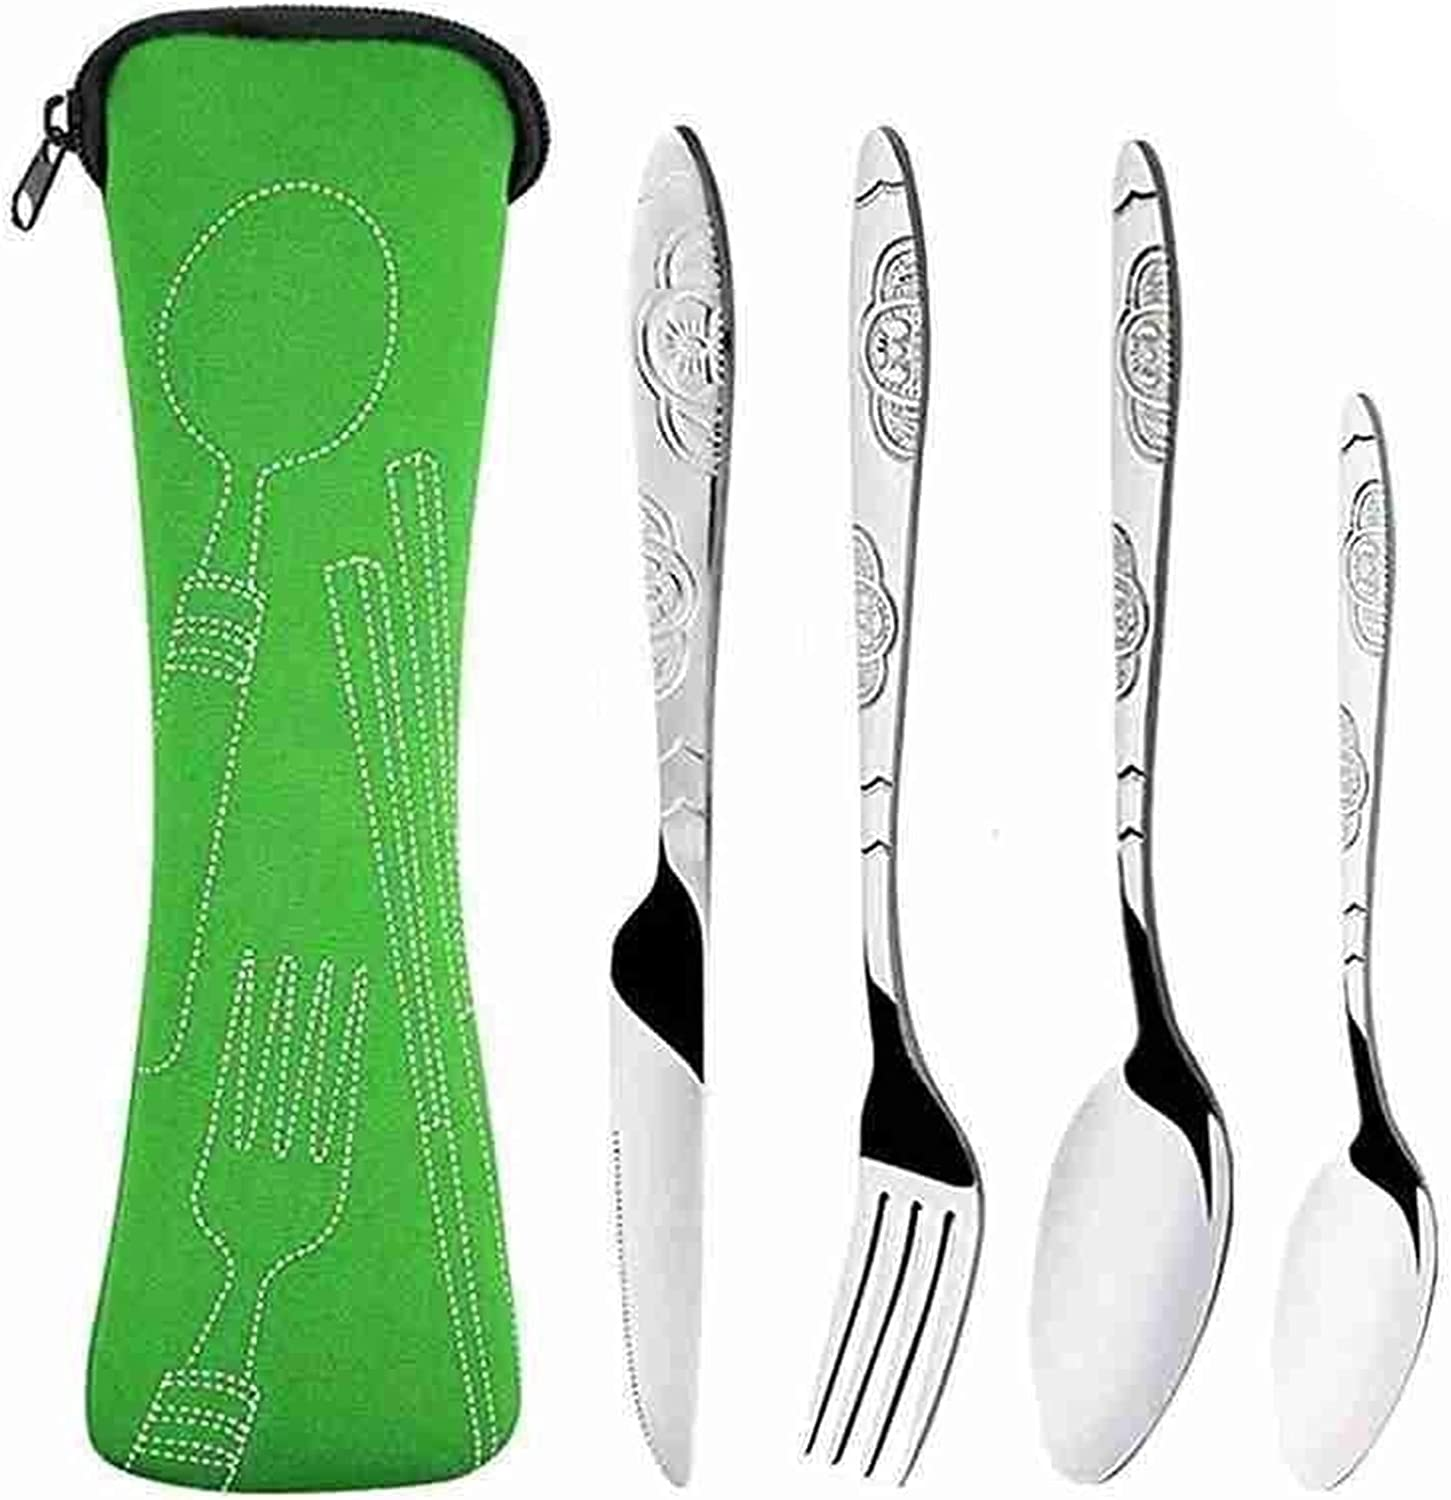 Inexpensive Steel Knife Fork Poon Set Family Travel Our shop OFFers the best service Cutlery Four-Pie Camping